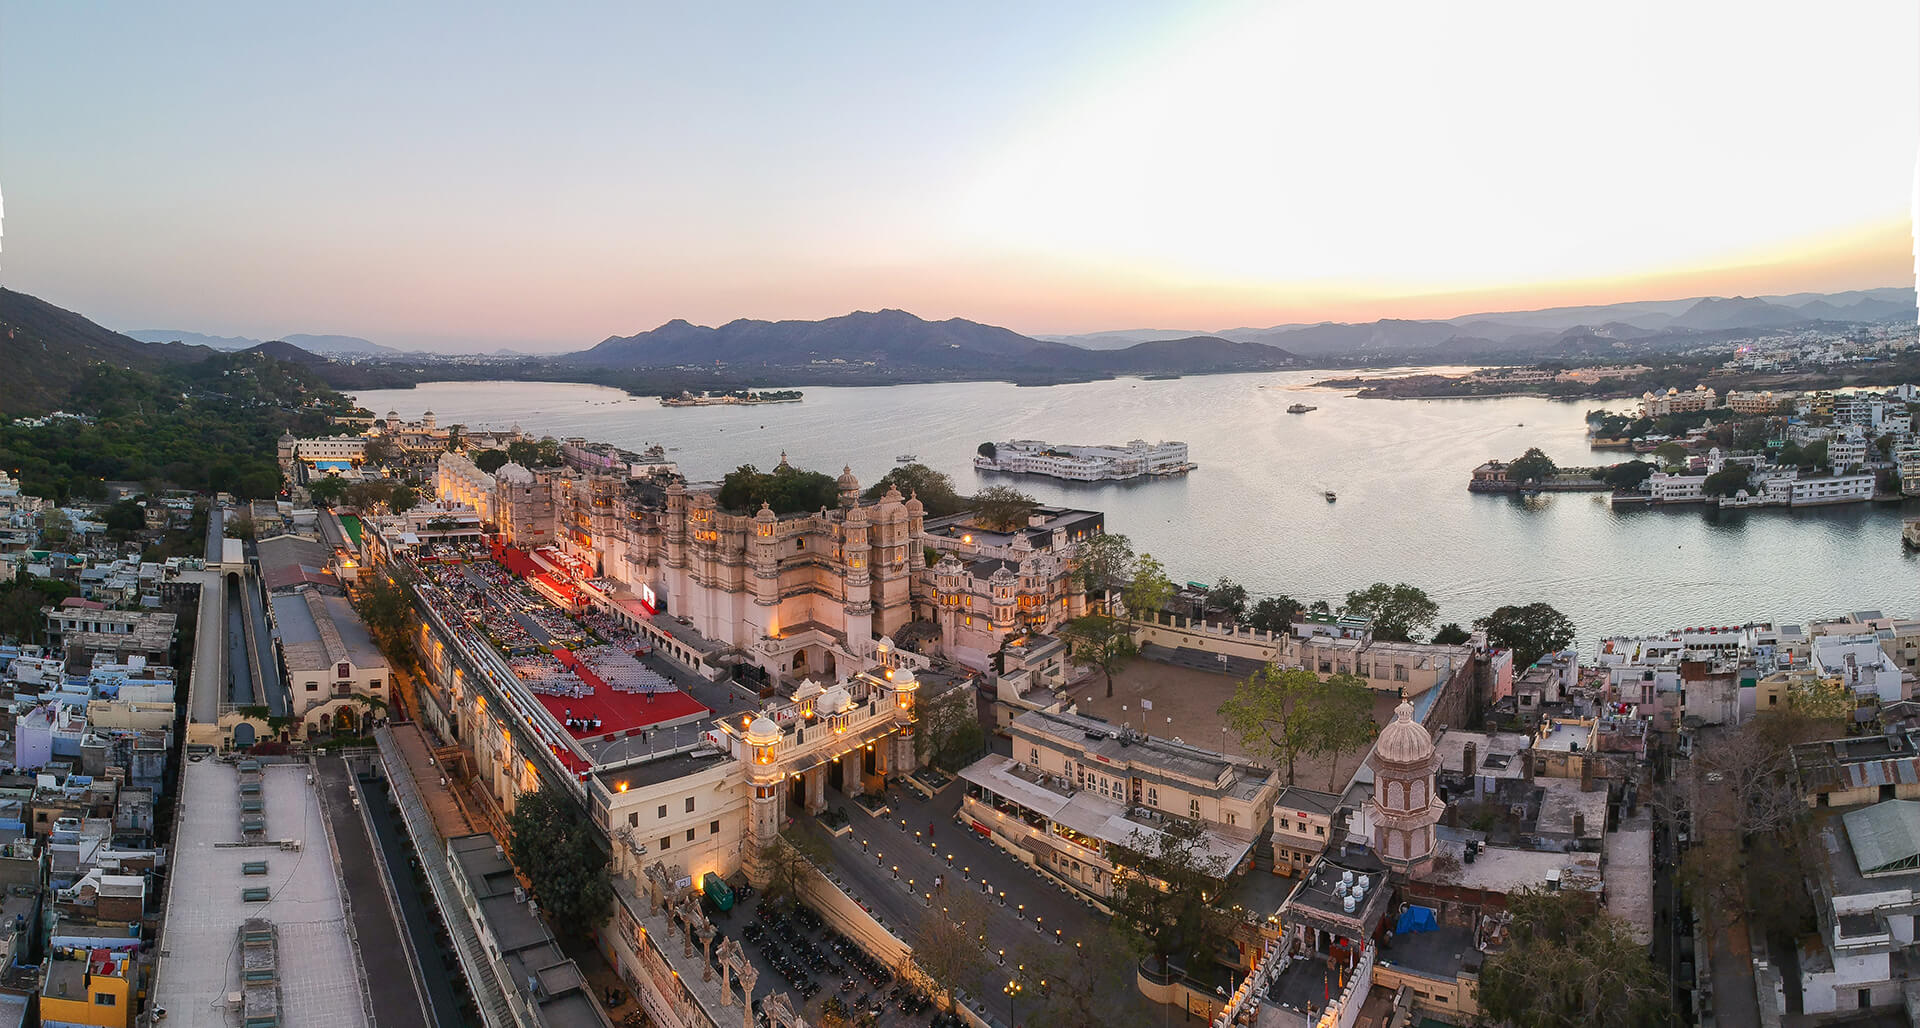 City of Udaipur